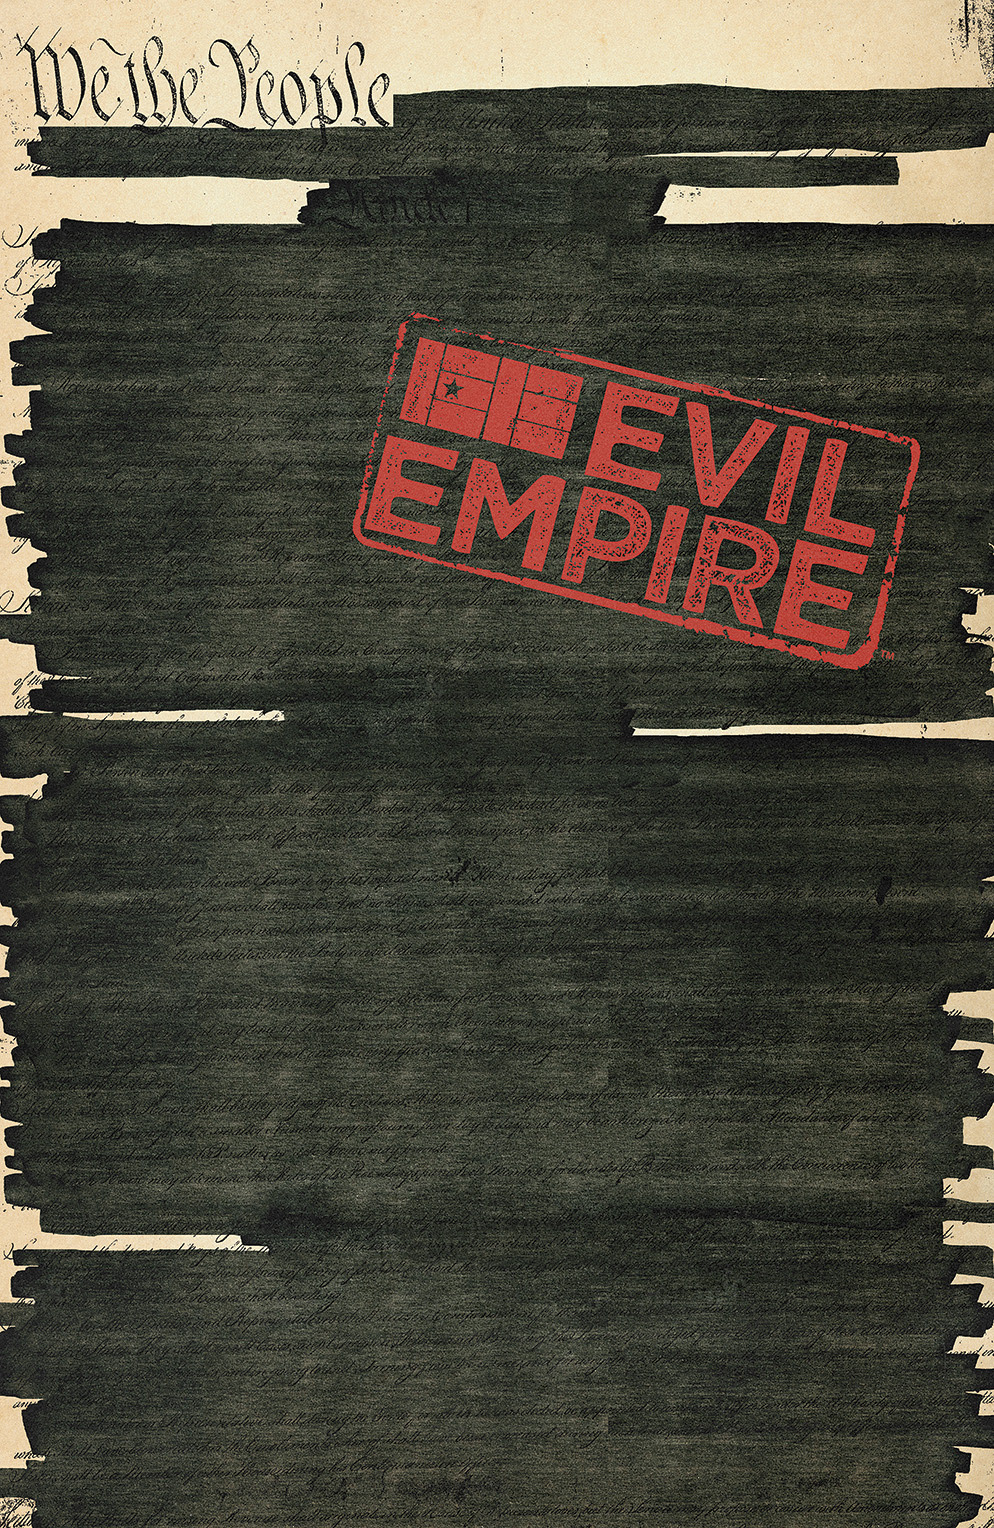 EVIL EMPIRE #6 Cover by Jay Shaw